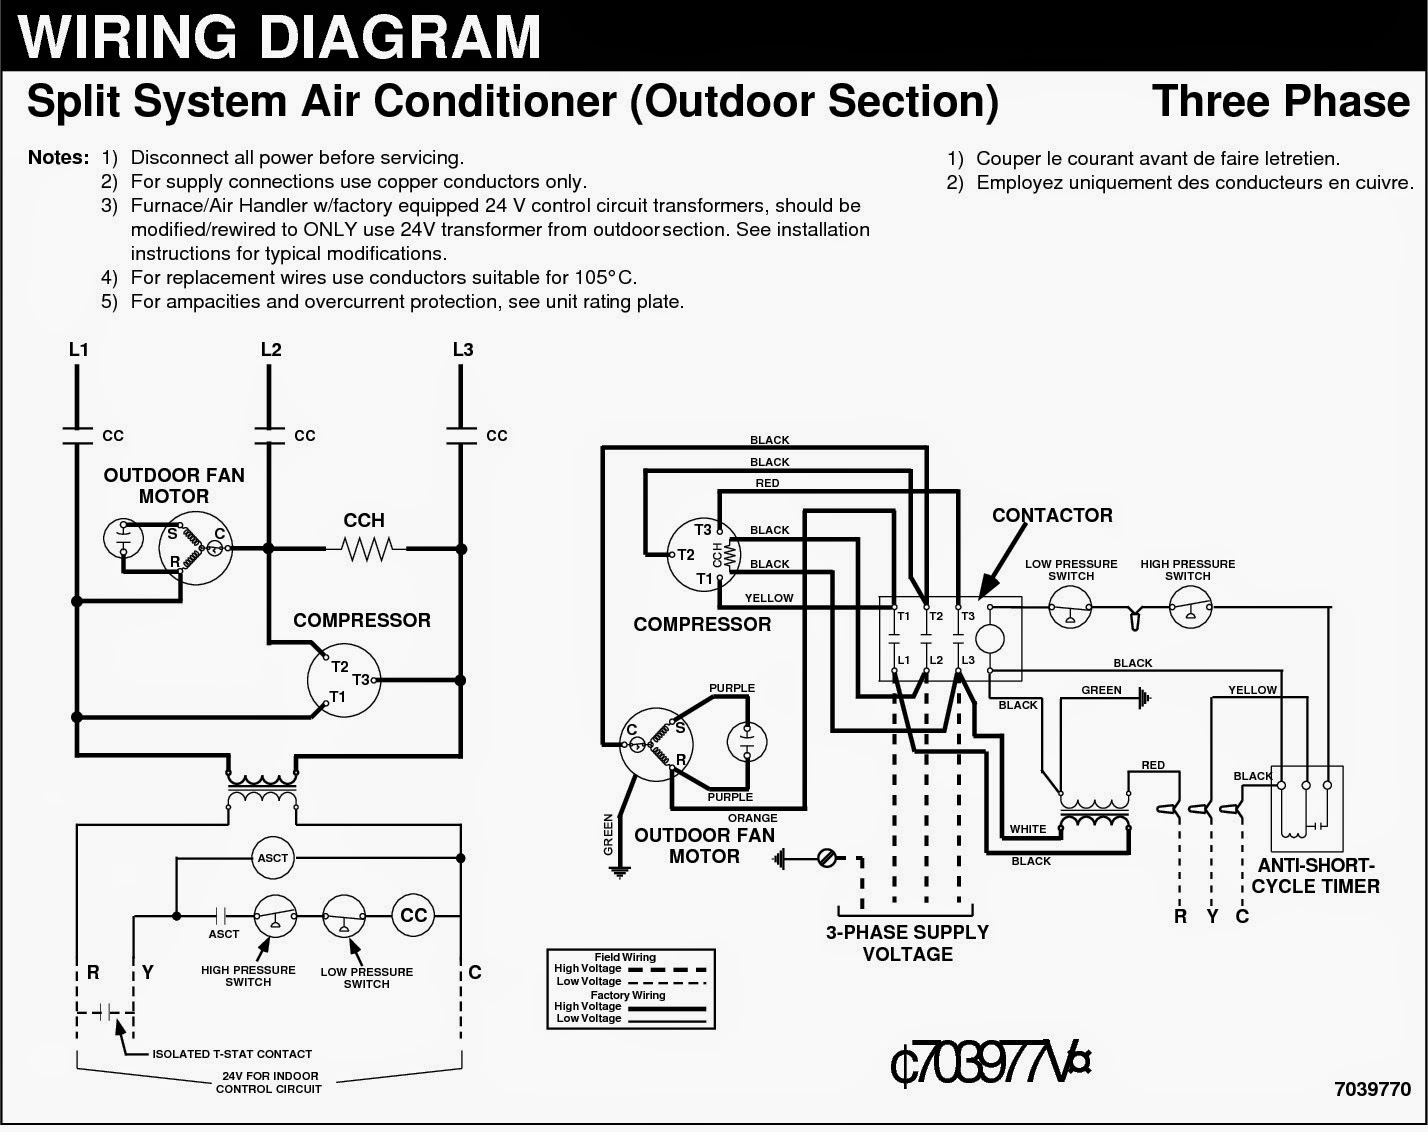 3+phase ac compressor wiring diagram bitzer compressor wiring diagram Single-Phase Motor Reversing Diagram at bayanpartner.co